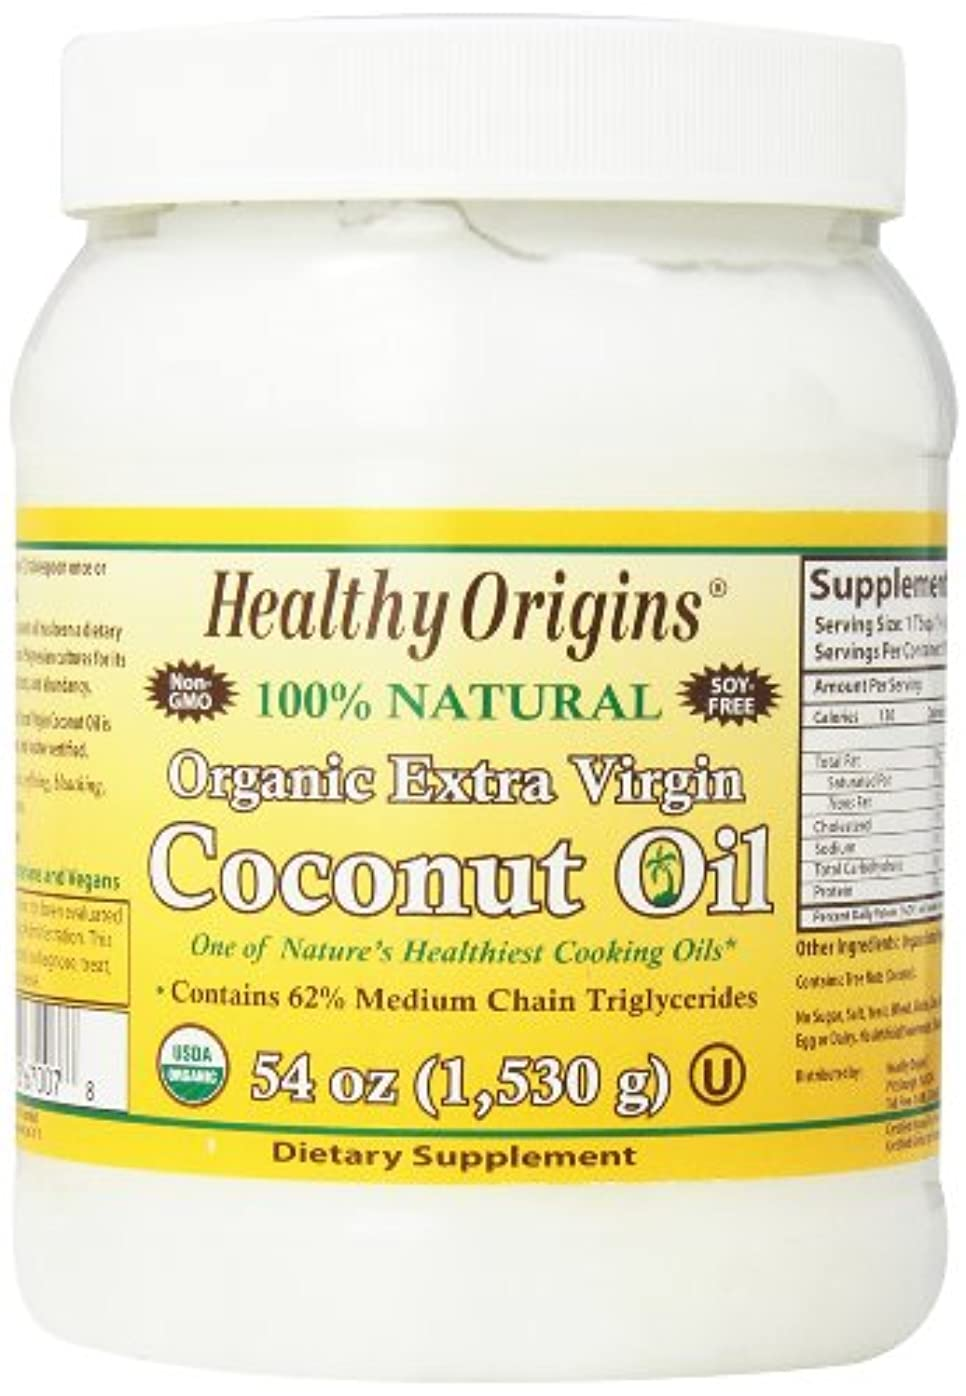 依存巻き戻すダウン海外直送品Organic Extra Virgin Coconut Oil, 54 Oz by Healthy Origins